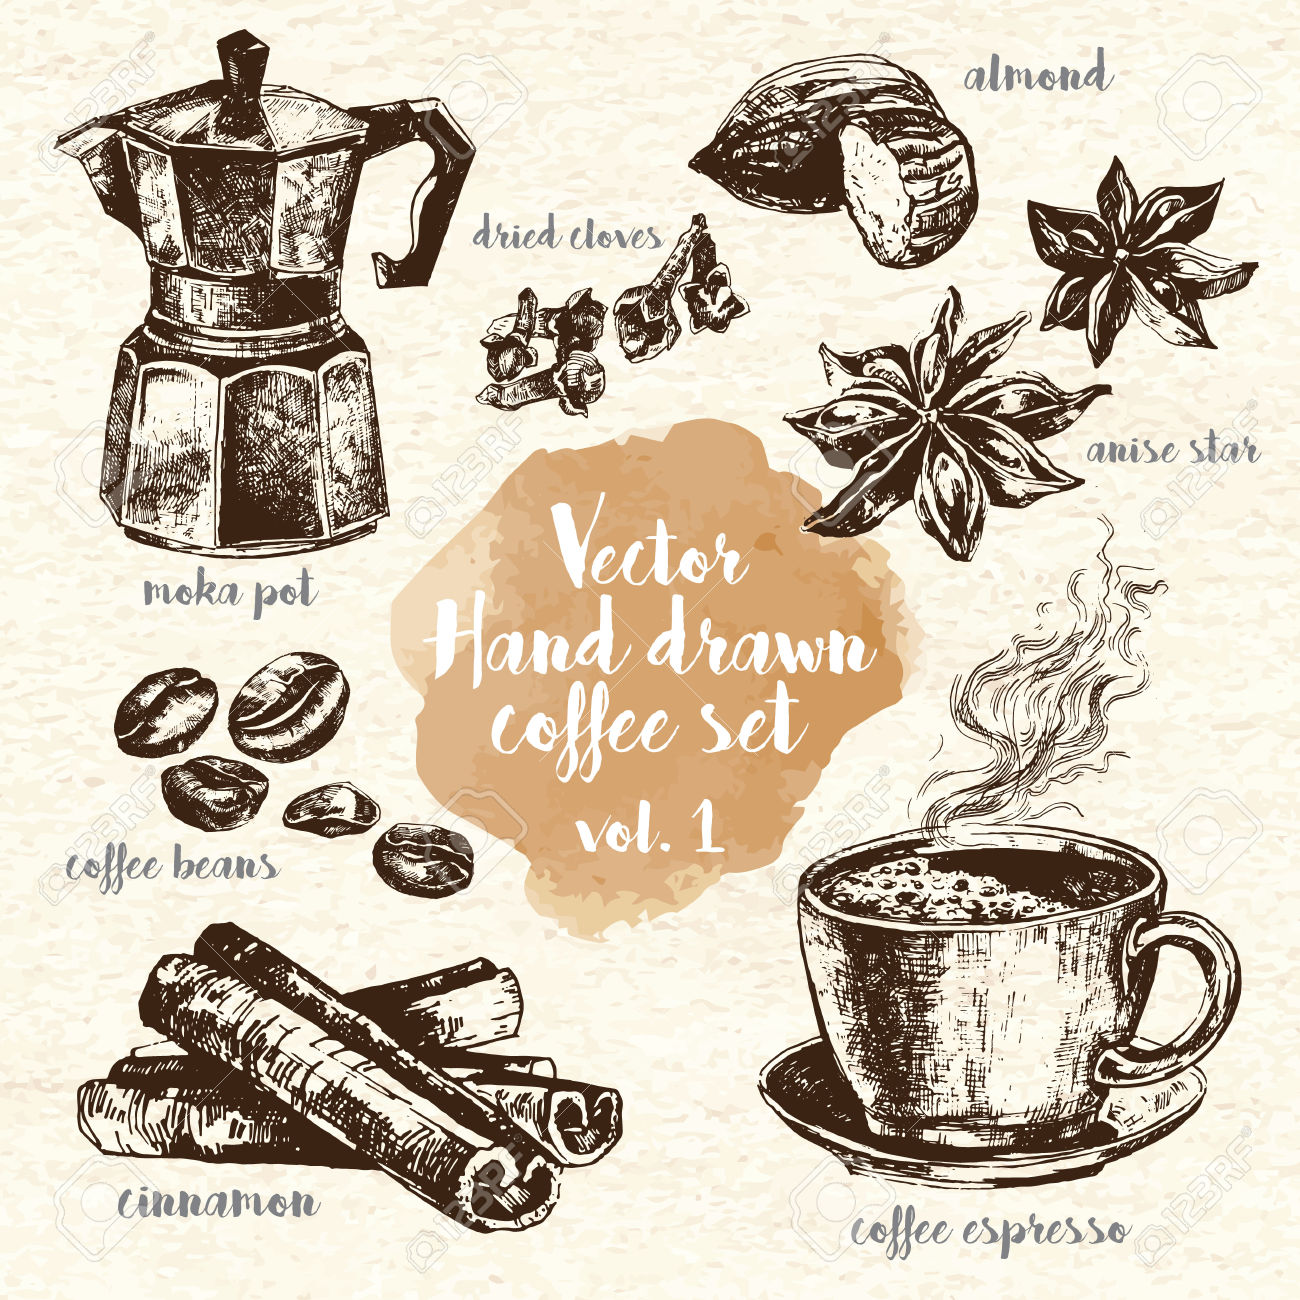 Including Espresso, Moka Pot, Anise, Coffee Beans And Dried Cloves.